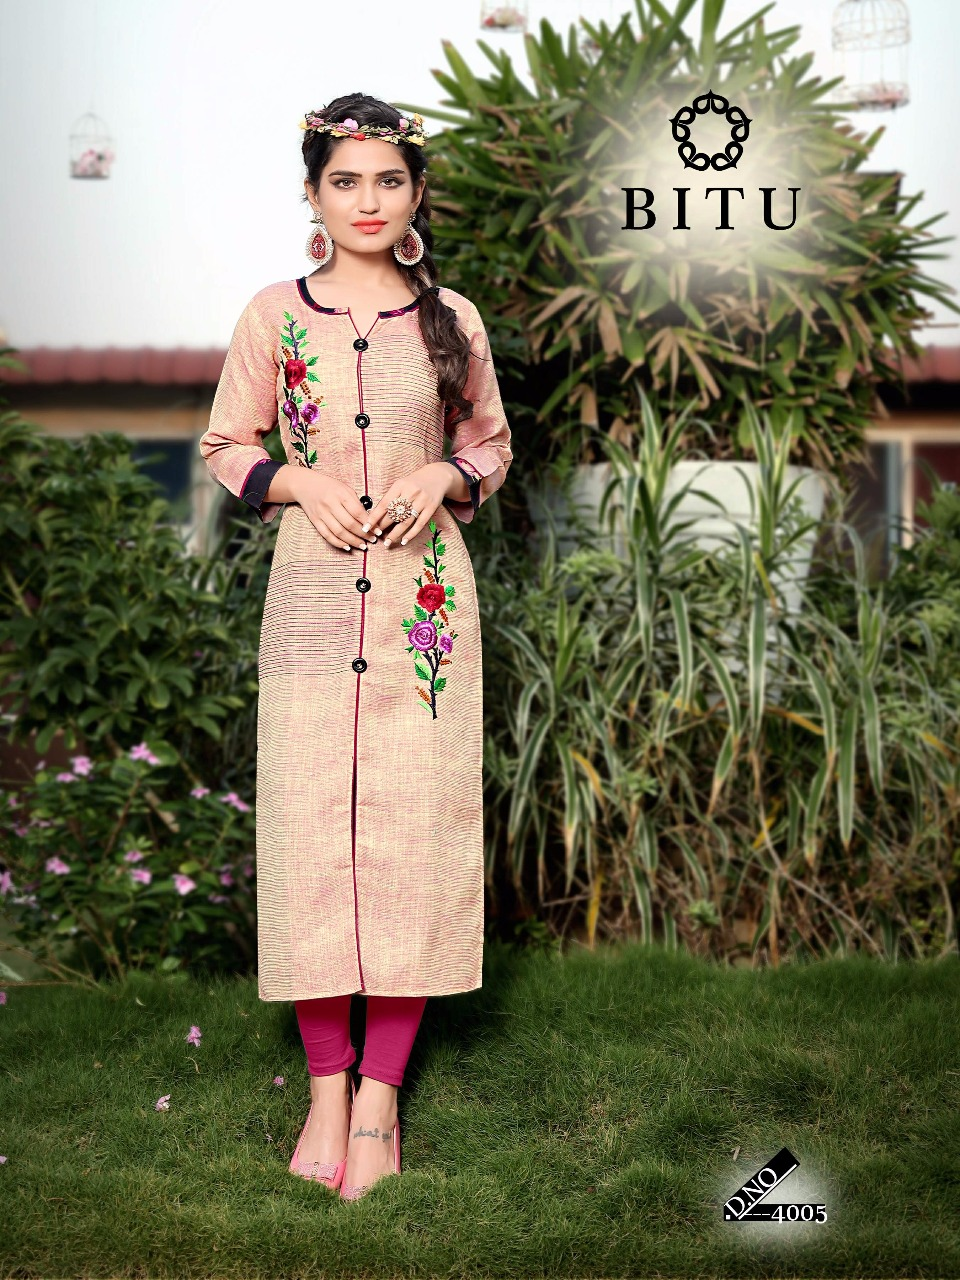 Bitu Rich Look 4005